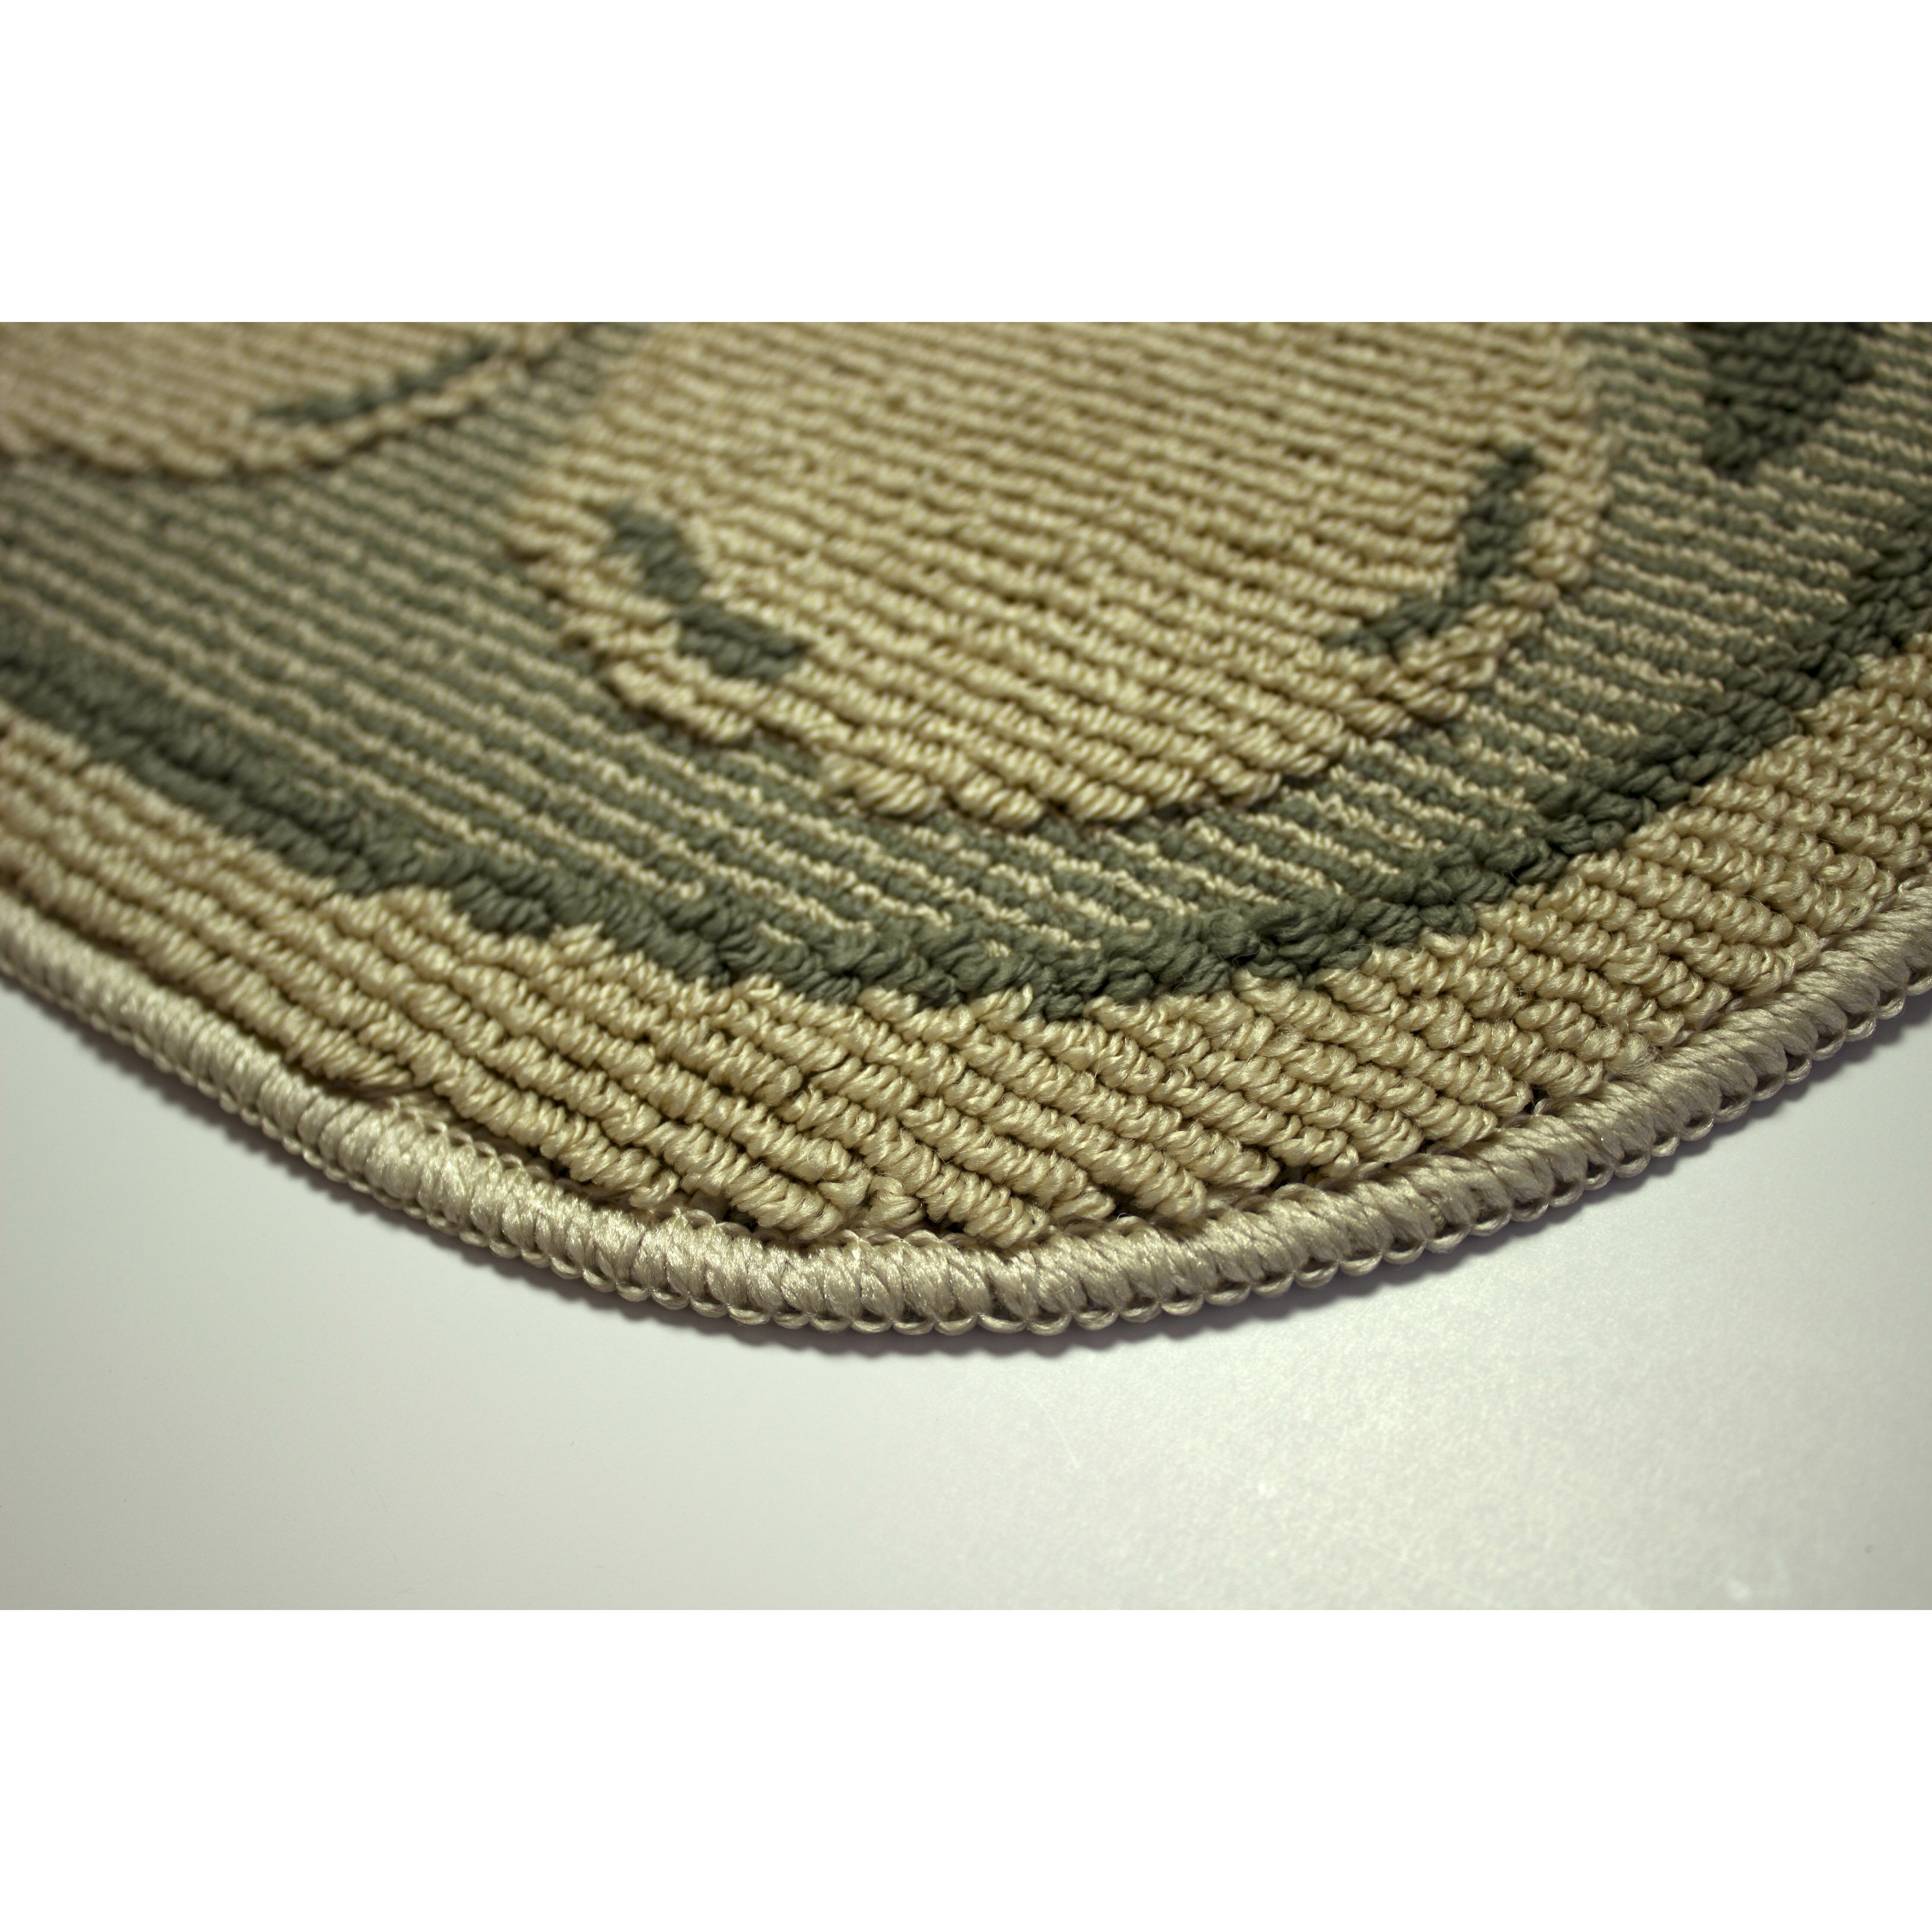 Structures Textured Loop Bartlett Pears Wedge Slice Kitchen Area Rug & Re